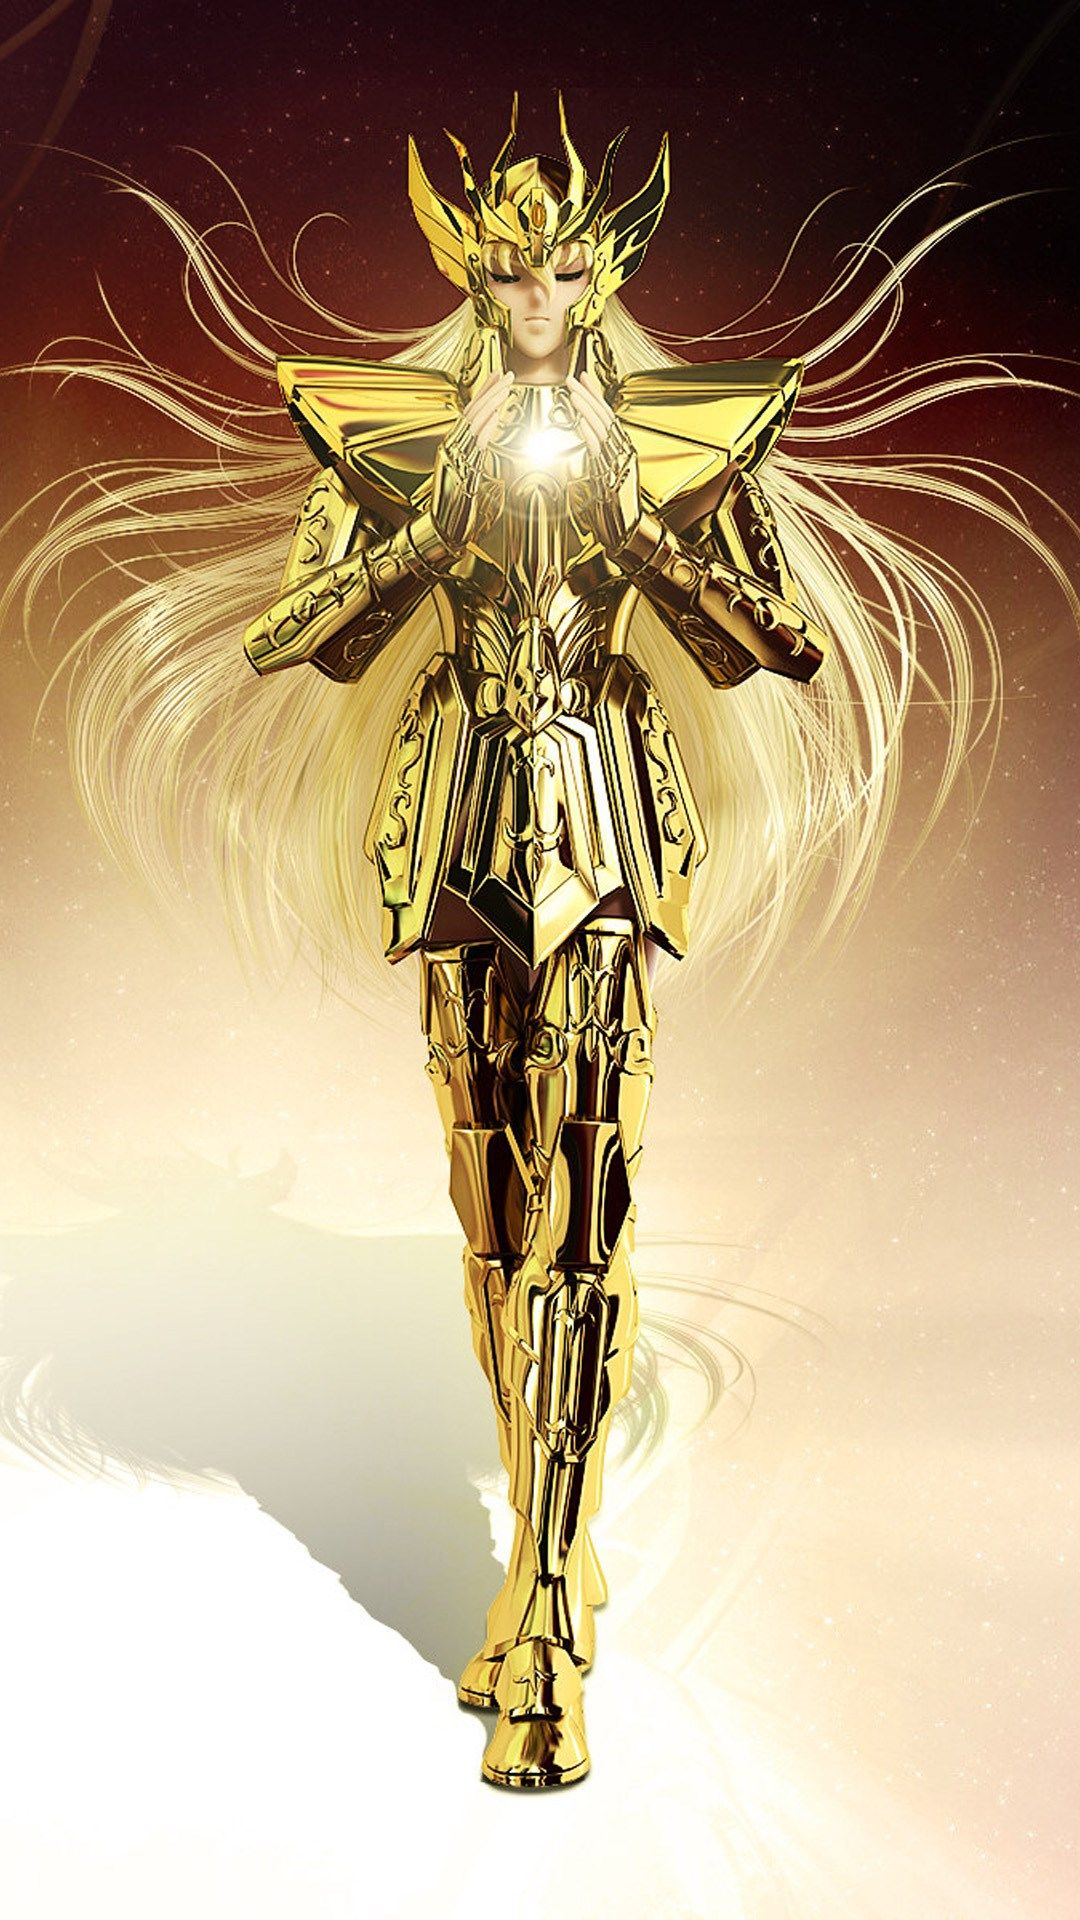 saint seiya anime poster iphone 6 wallpaper Libra